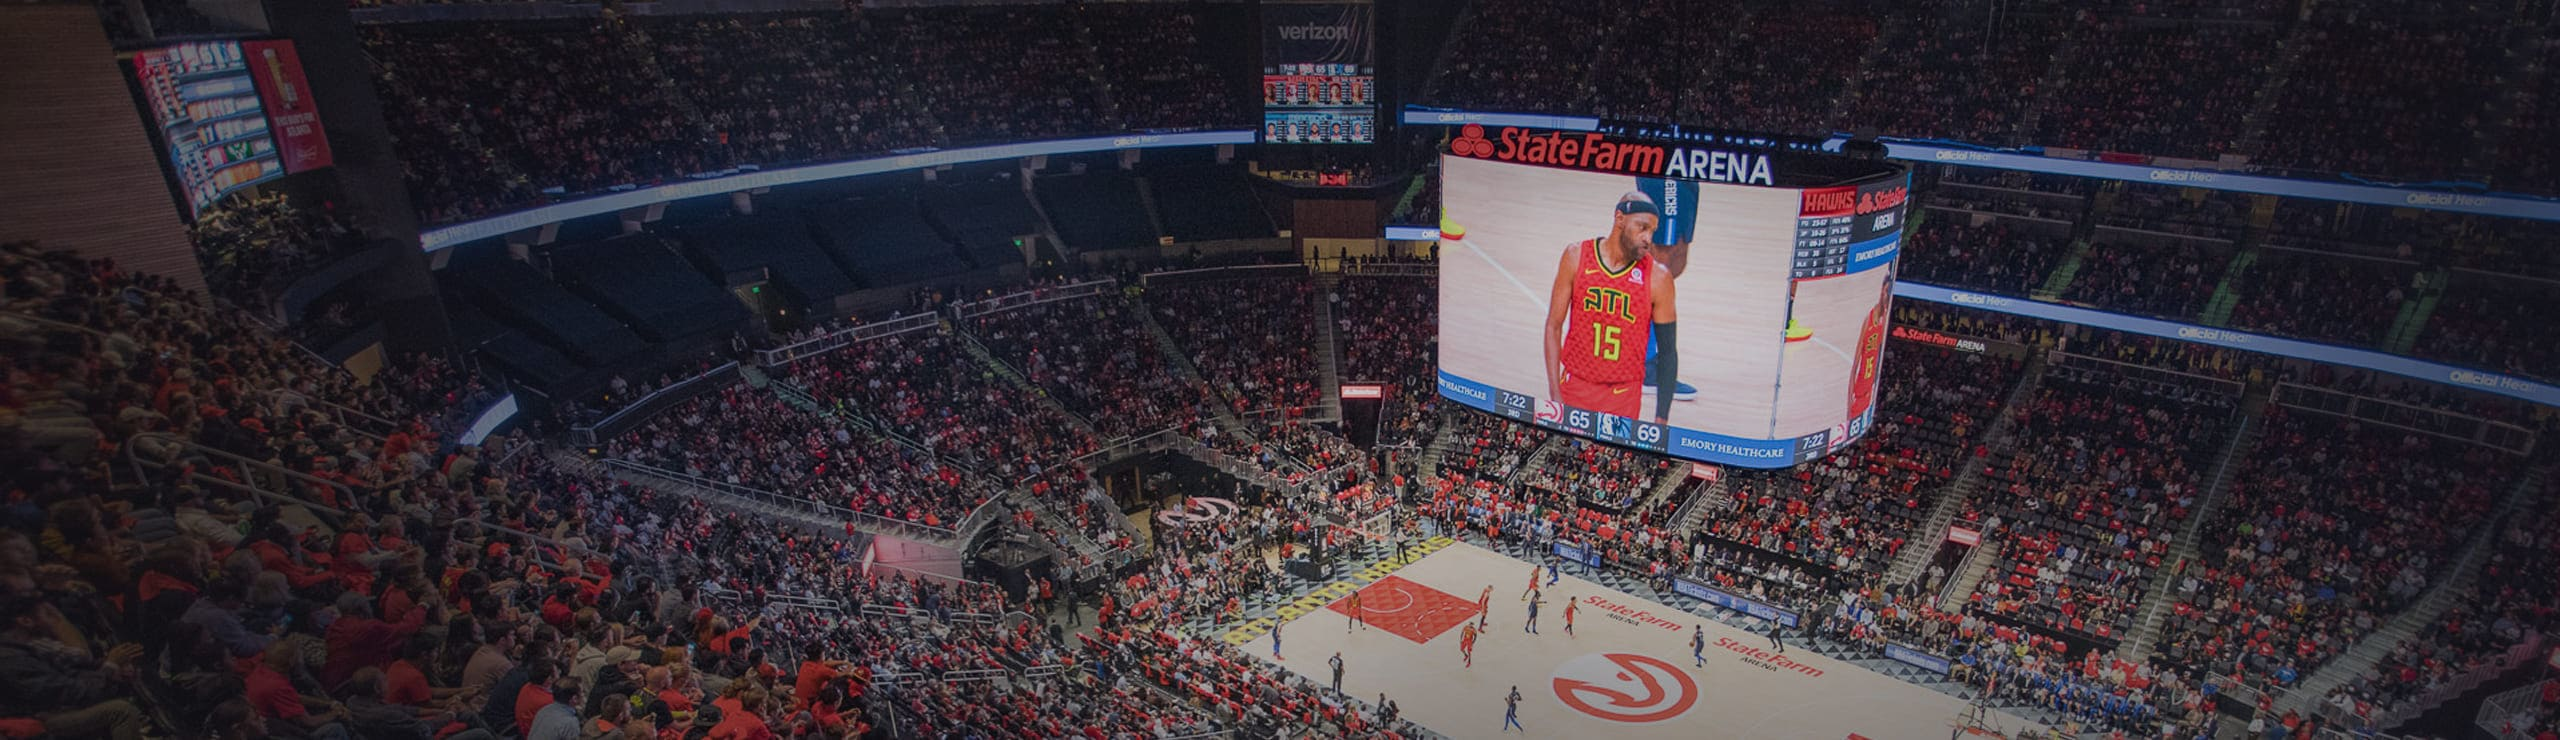 Atlanta Hawks State Farm Arena List Highlight Detail Submain Image